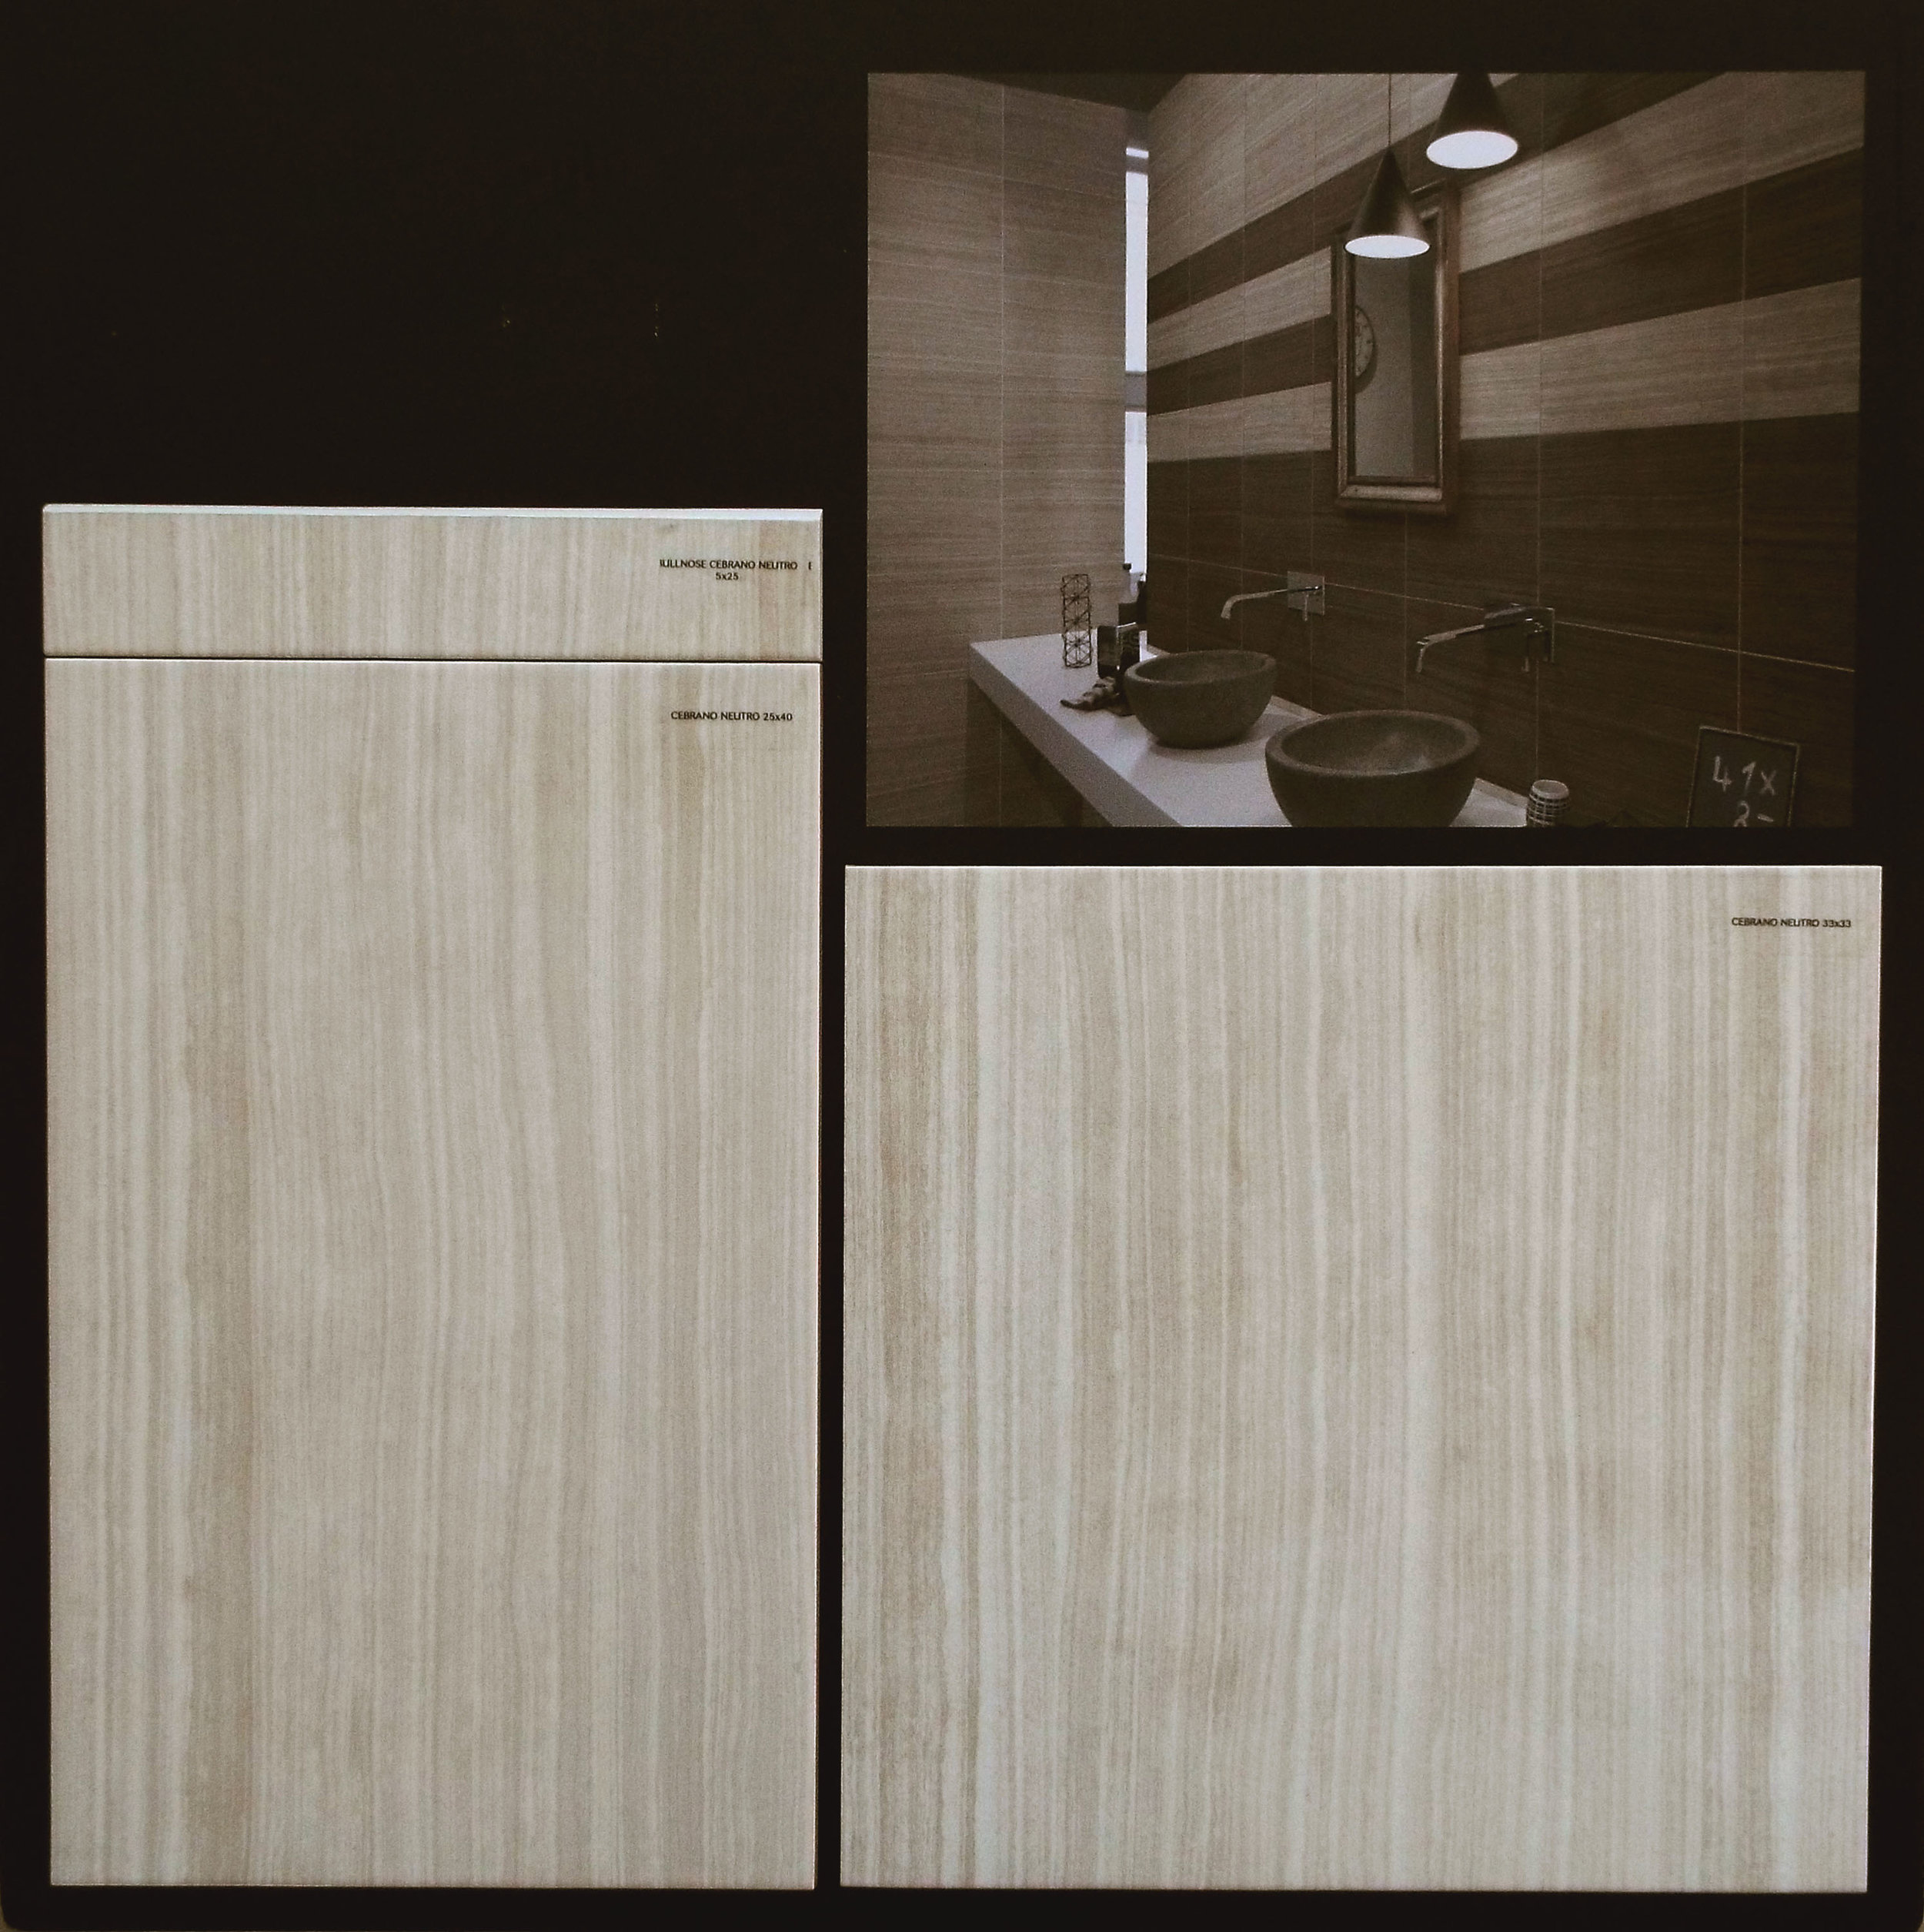 "CEBRANO NEUTRO  10""X16"" GLOSSY WALL - 15 PC/CTN (16.15 SF); 64CTN/PLT  13""X13"" FLOOR GLOSSY - 14 PC/CNT(16.68 SF); 44CTN/PLT  3""X10"" BULLNOSE AVAILABLE - 44 PC/CTN"